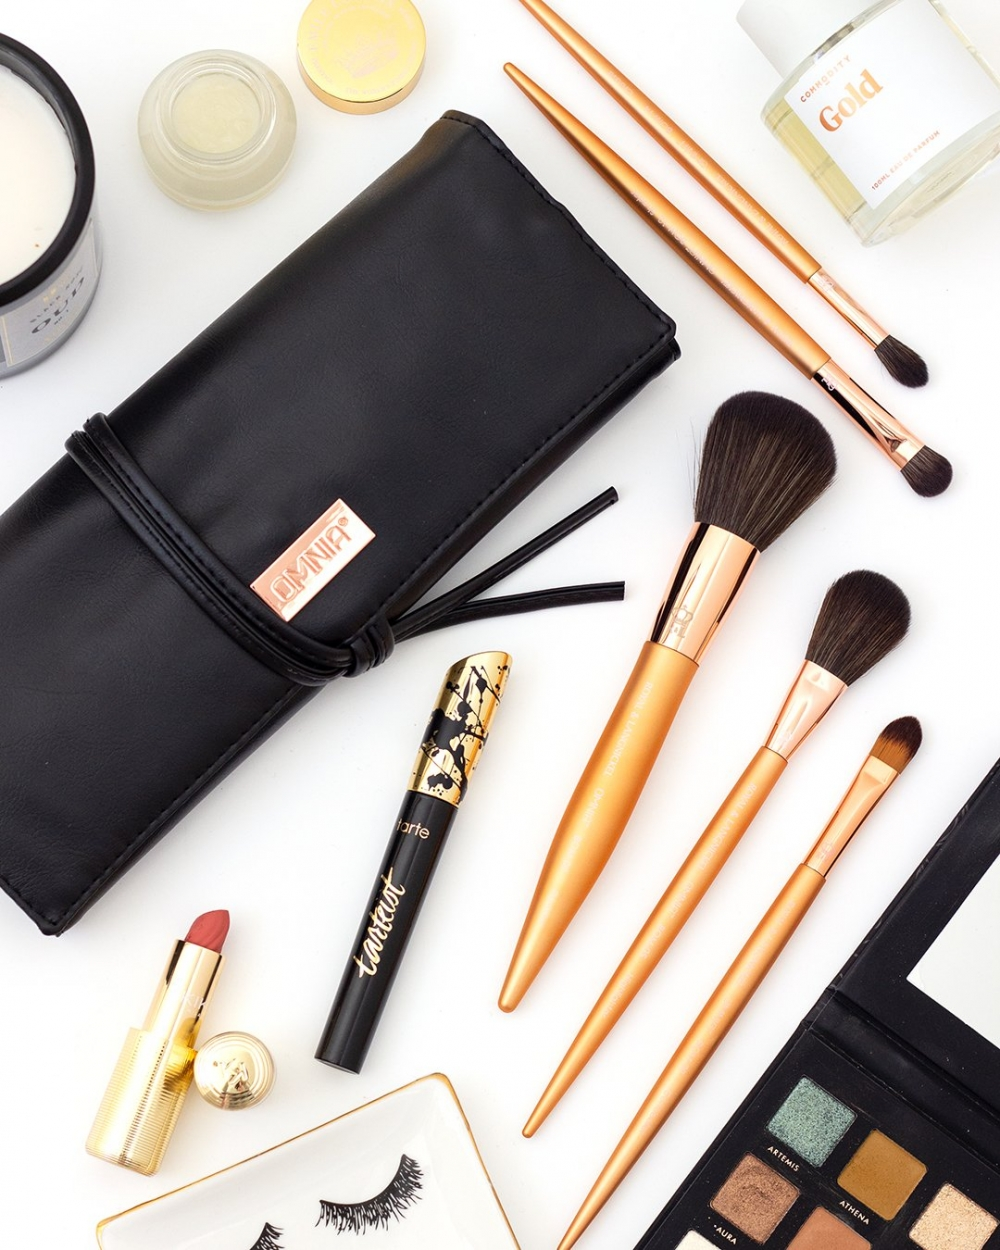 Shop the Omnia 13 Piece Rose Gold Brush Set (use code BLUSHINGBIRDIE to save 15%!)